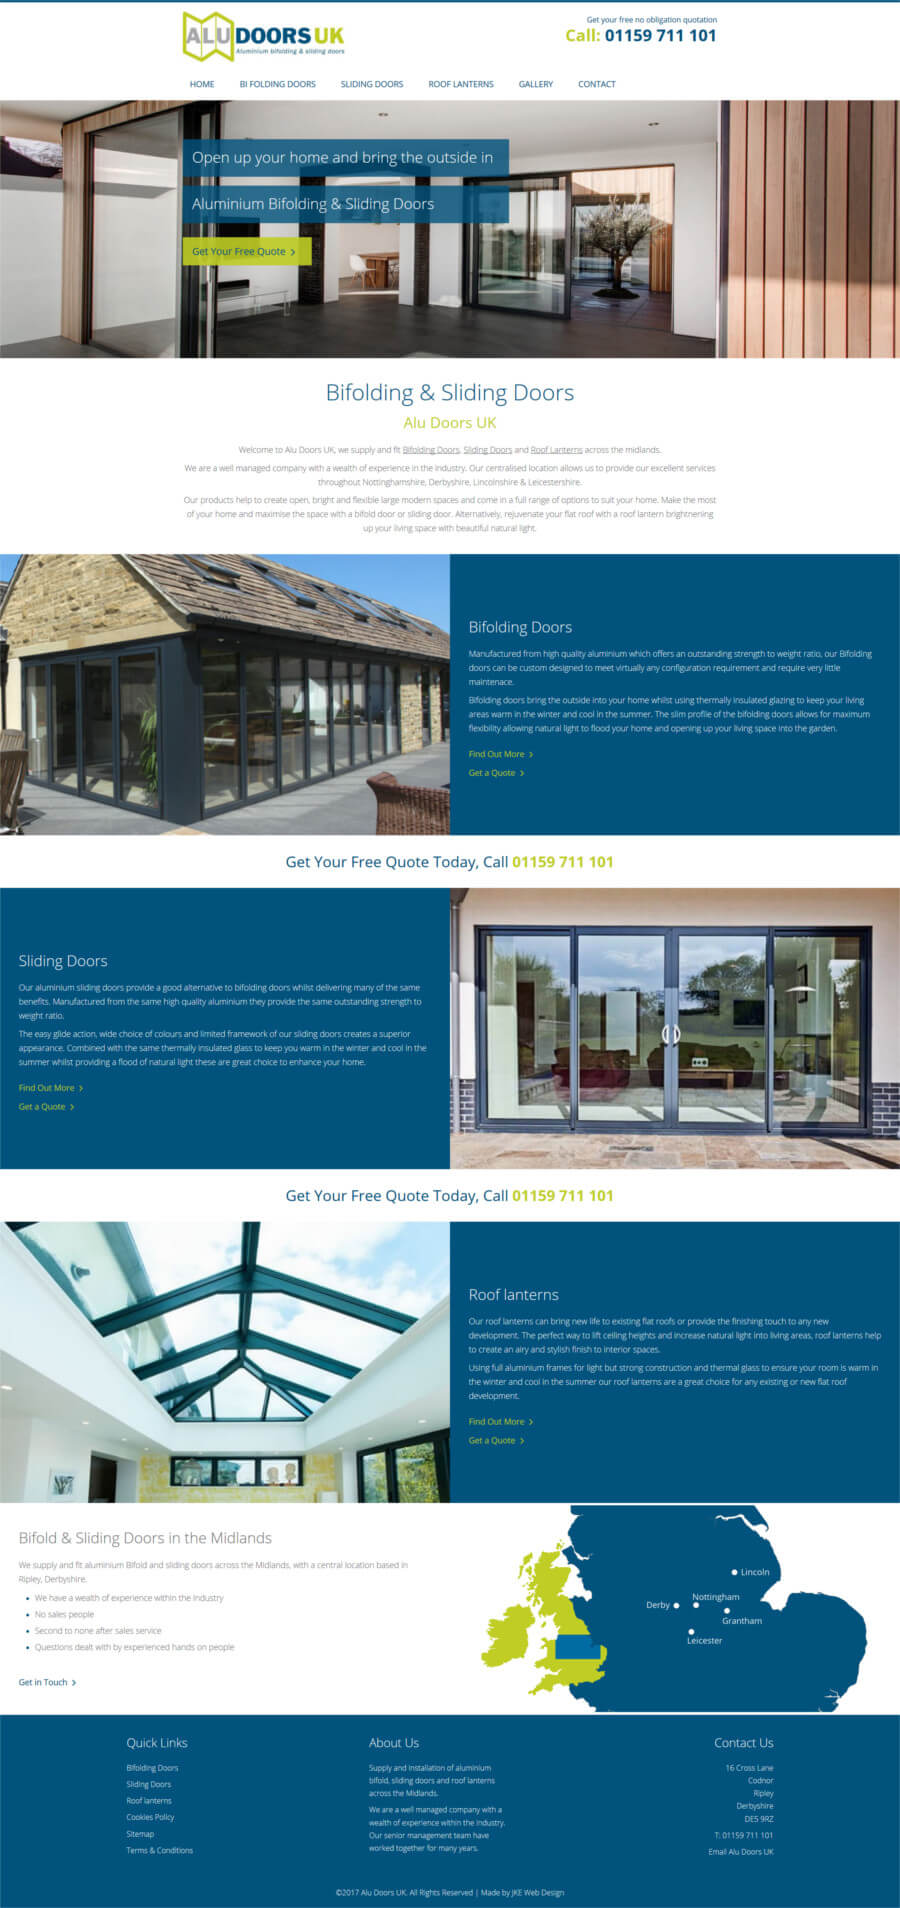 Alu Doors UK website